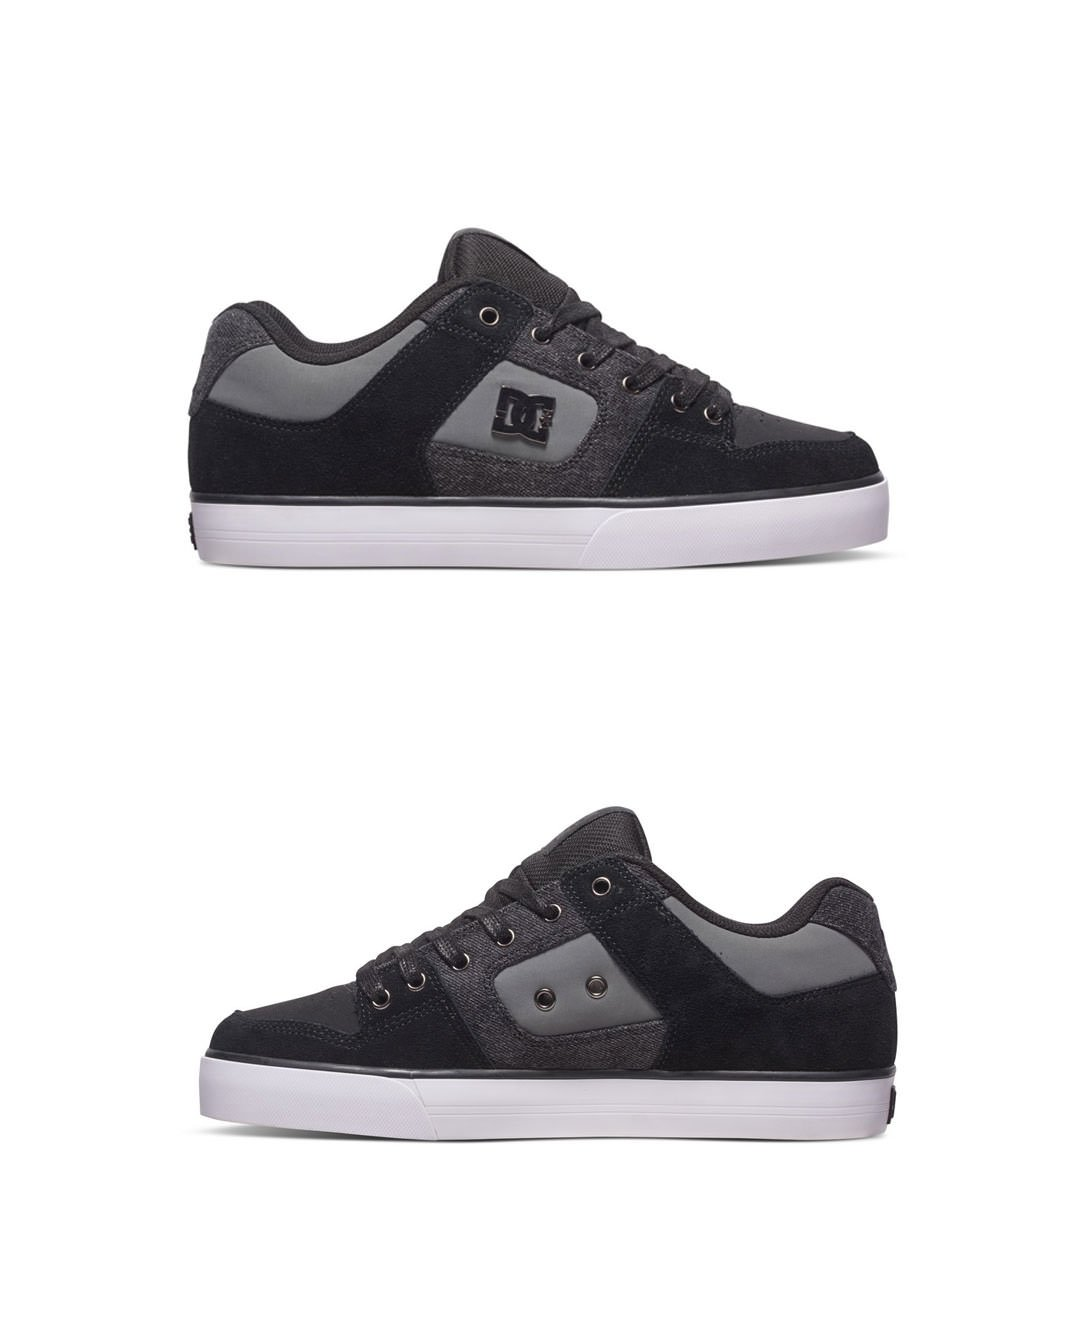 DC SHOES PURE SE KDW 2017 - LM BOARD STORE